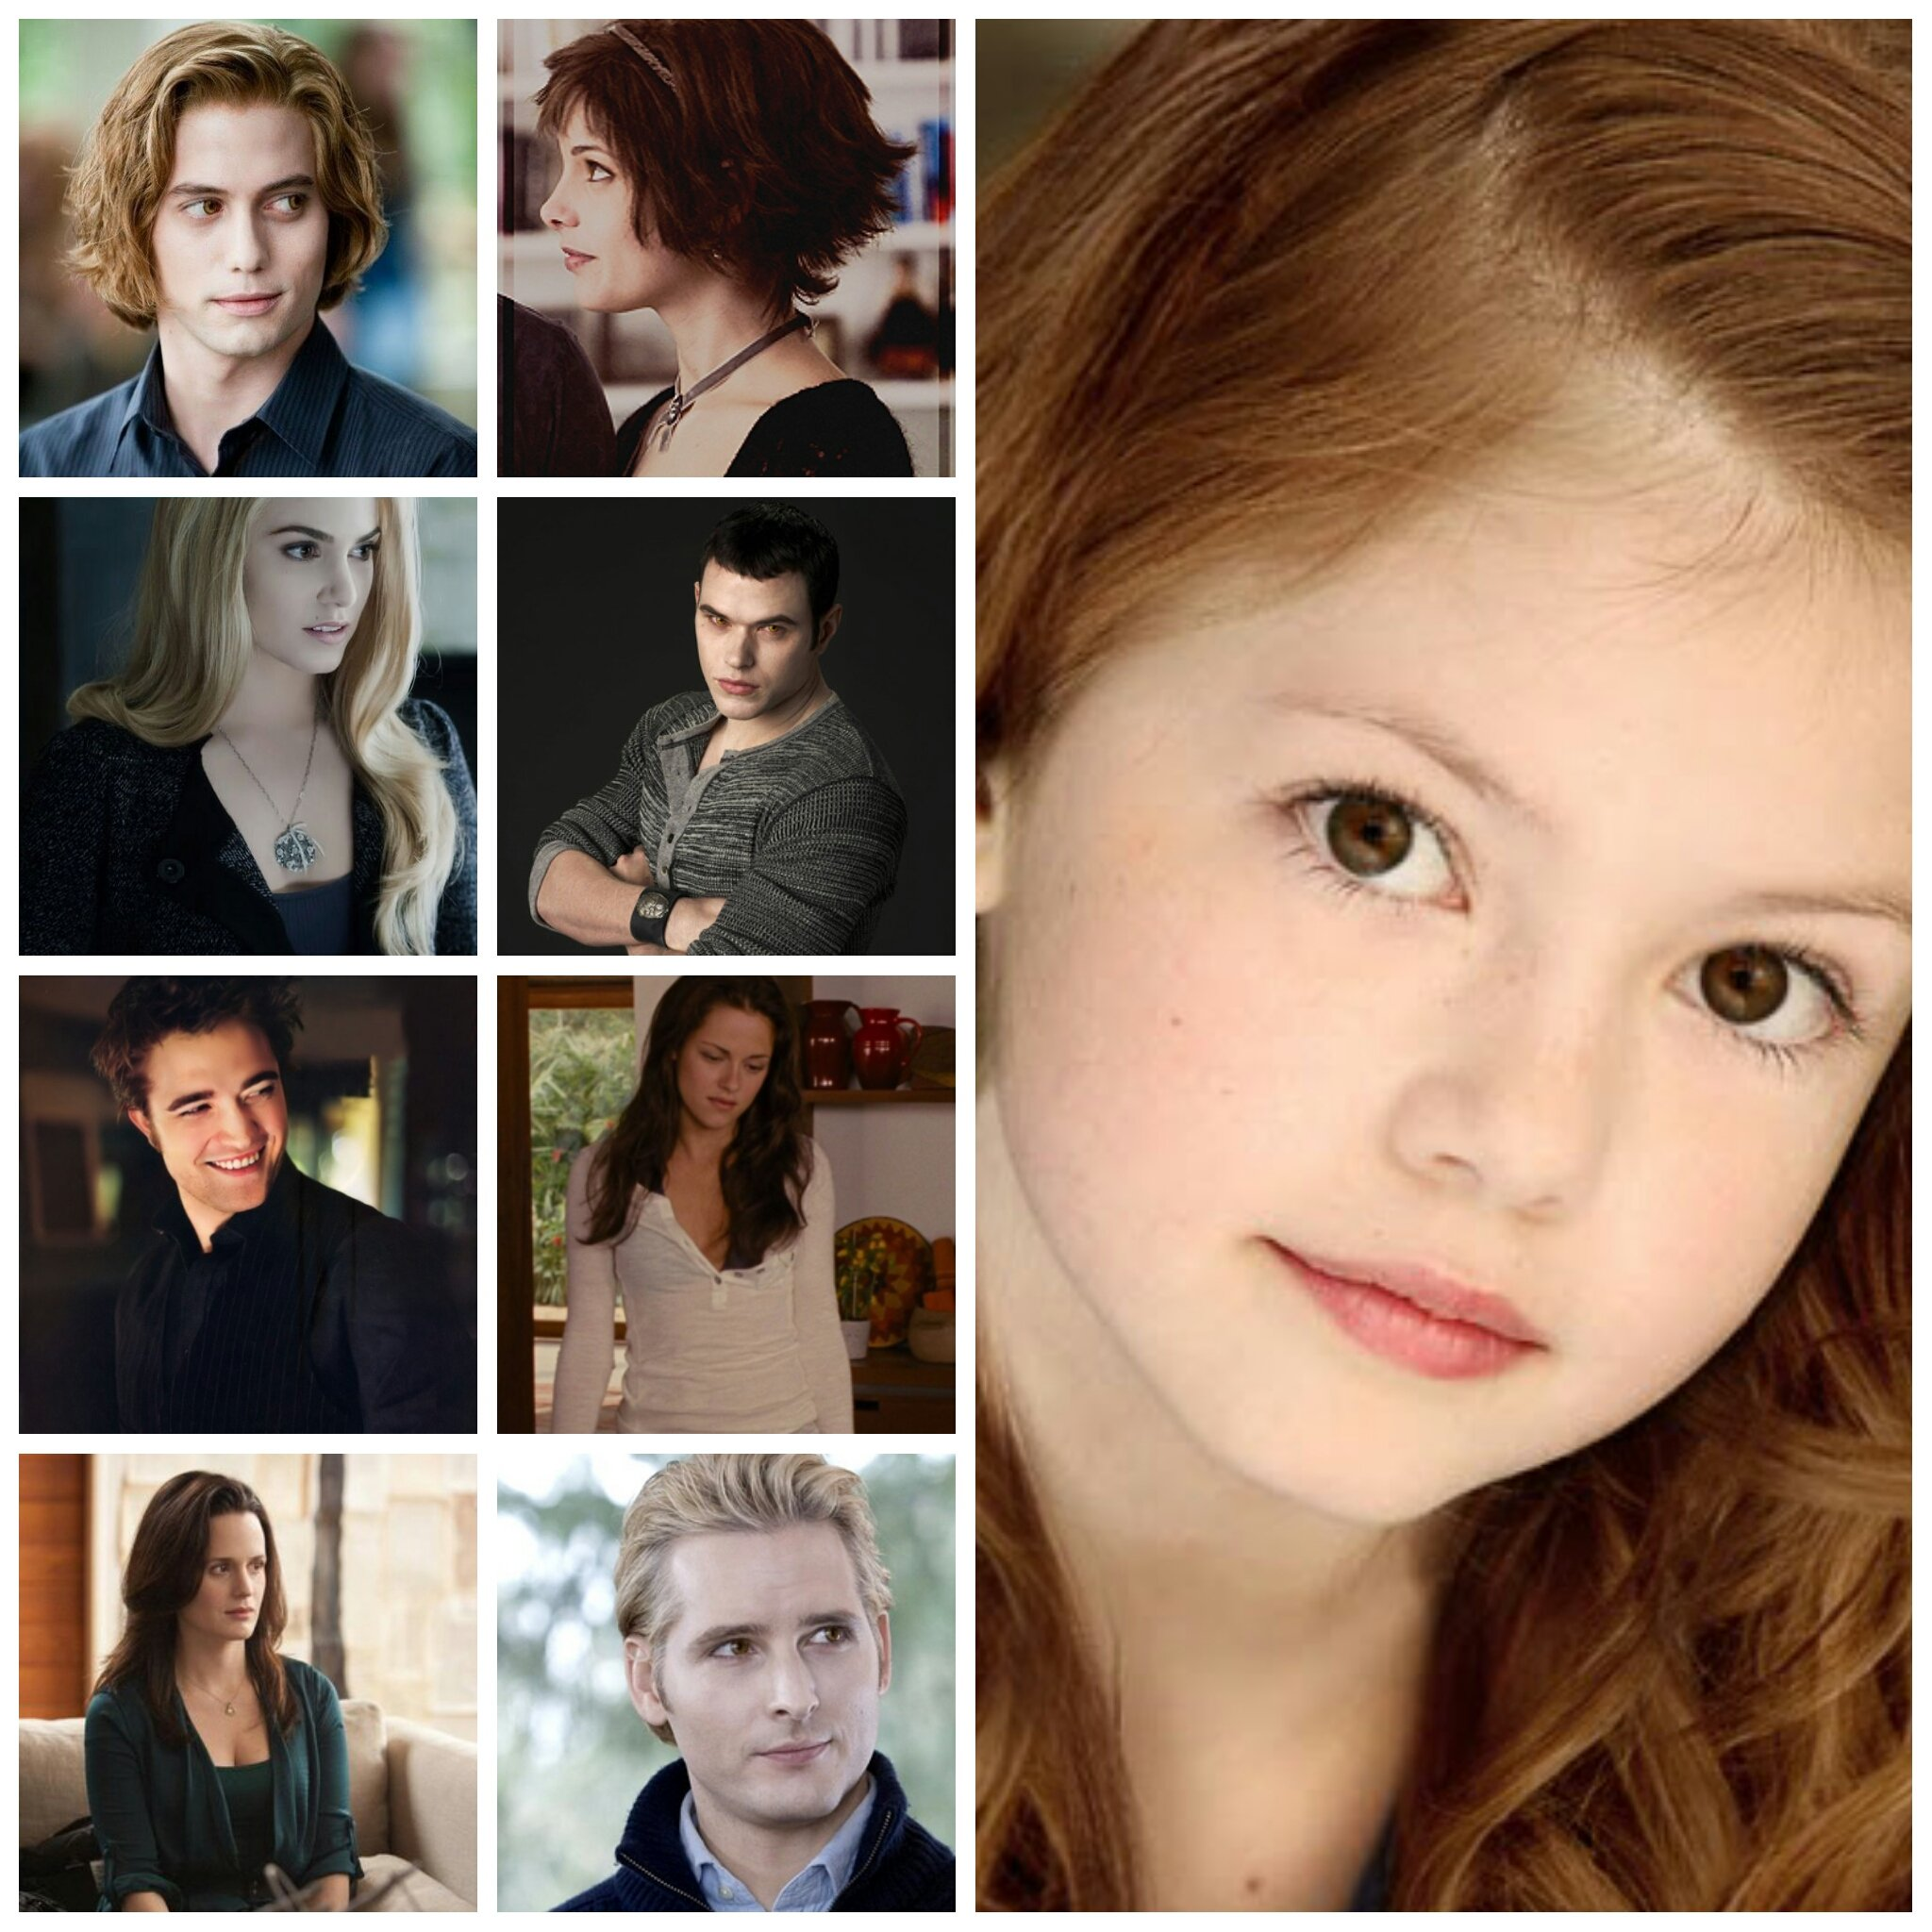 Cullens and Renesmee